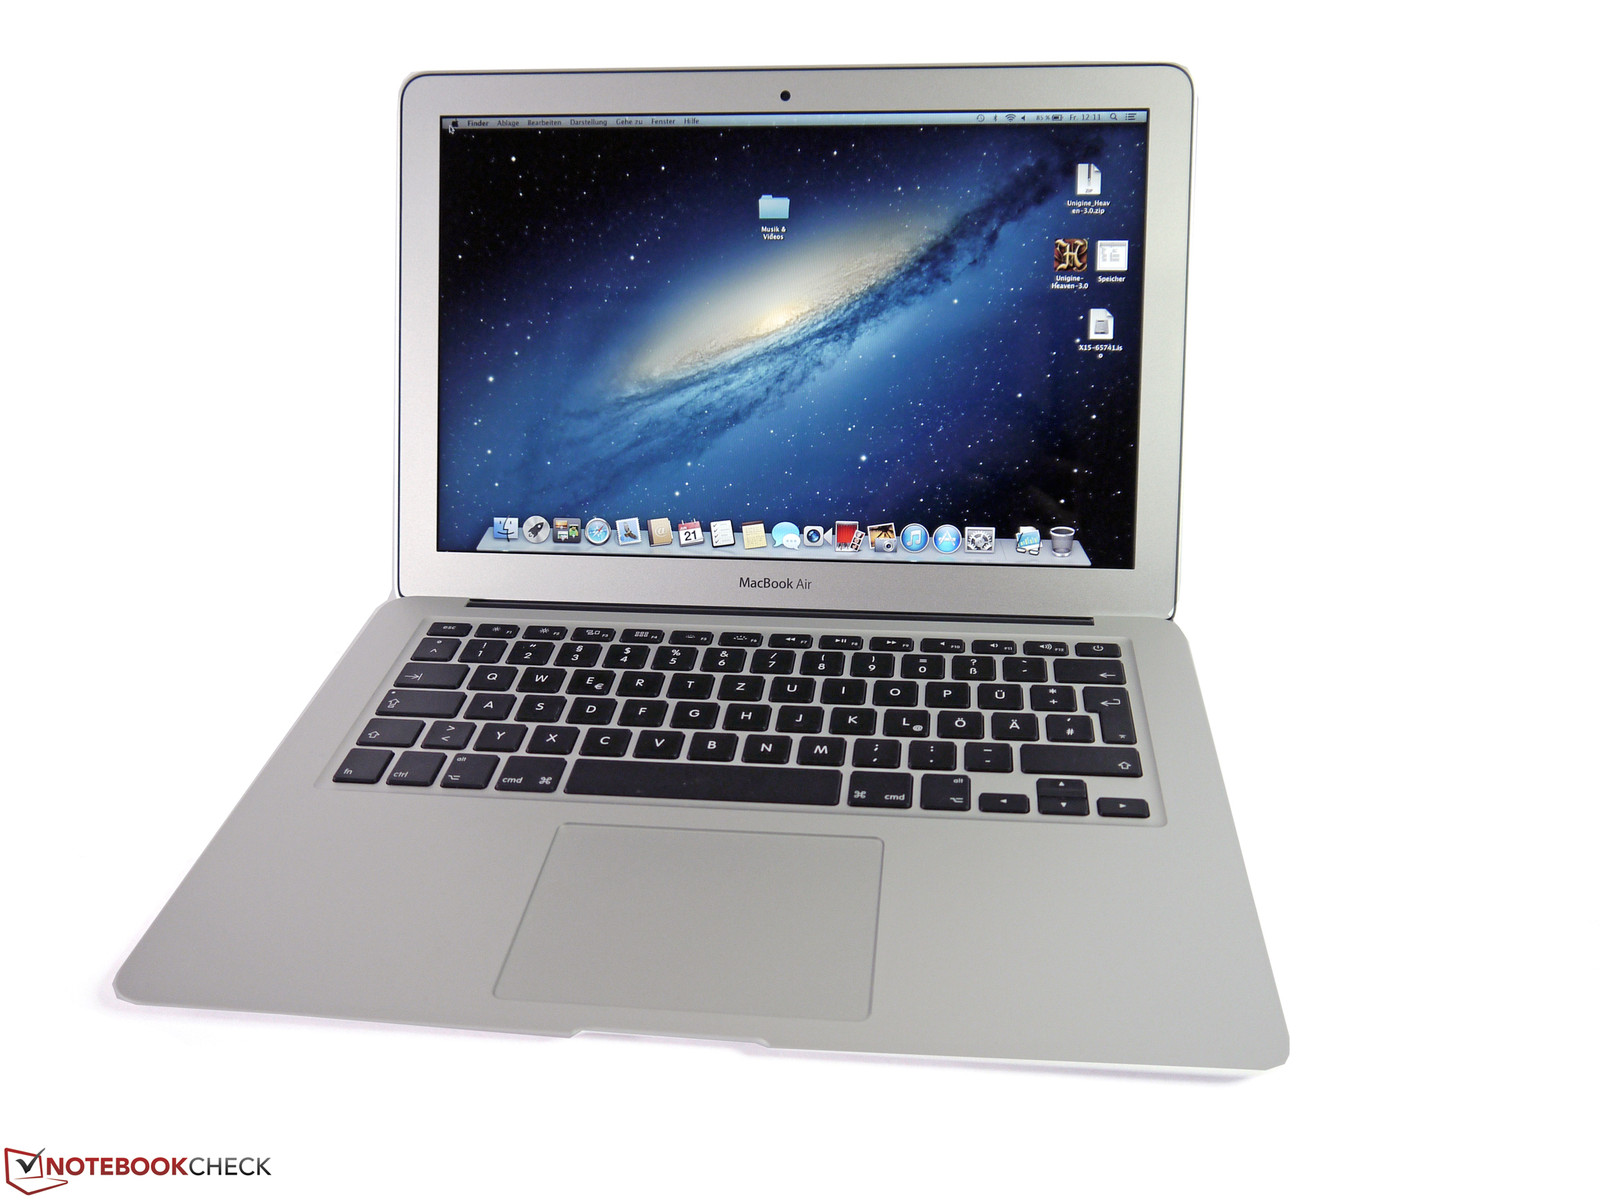 apple macbook air 13 2015 notebook review. Black Bedroom Furniture Sets. Home Design Ideas